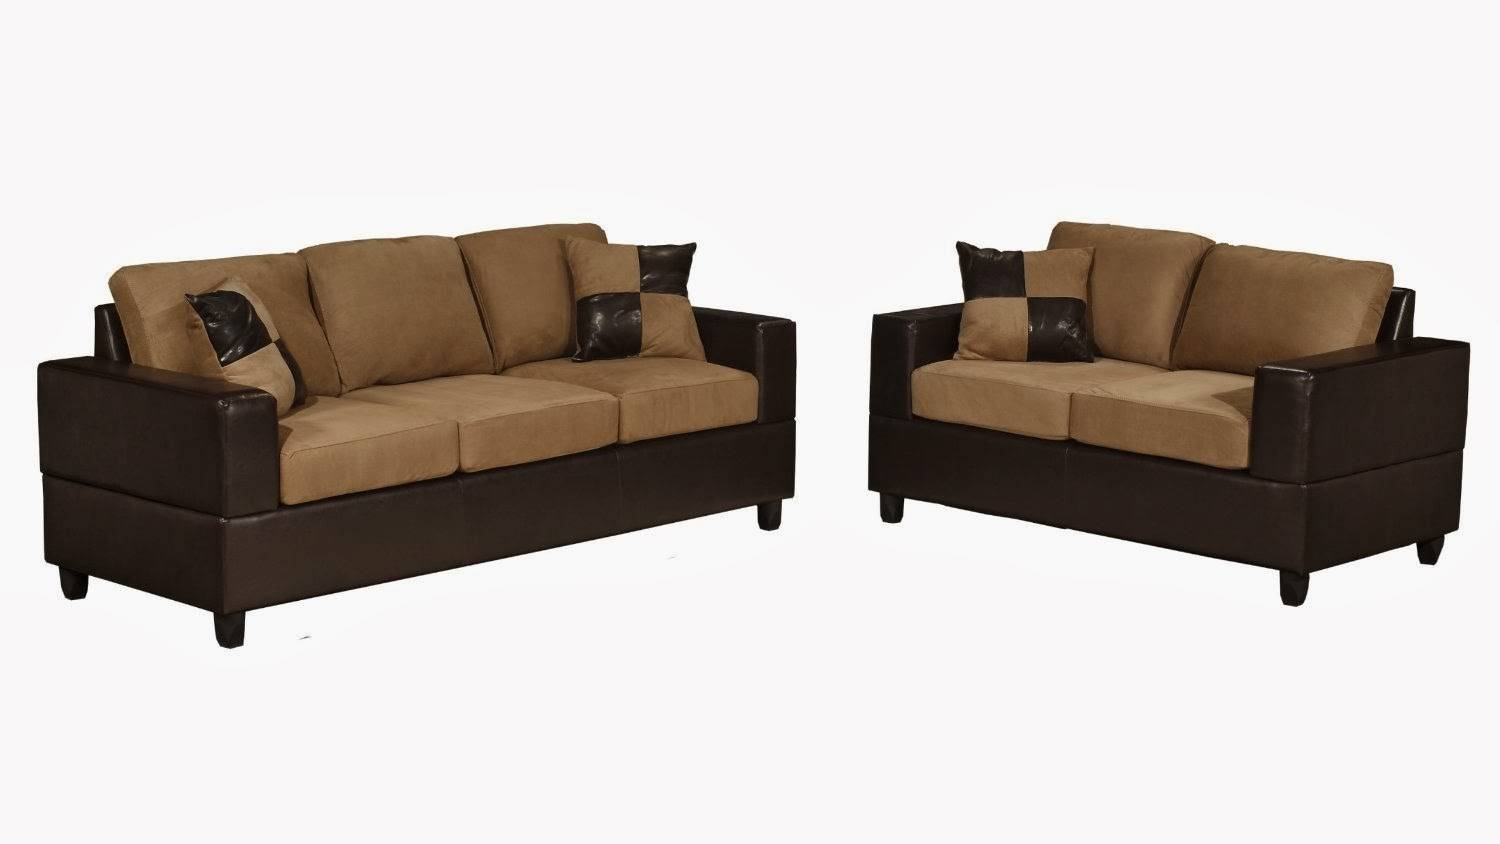 Www.homegrowndecor/content/nice-Compact-Sleepe regarding Compact Sectional Sofas (Image 22 of 30)